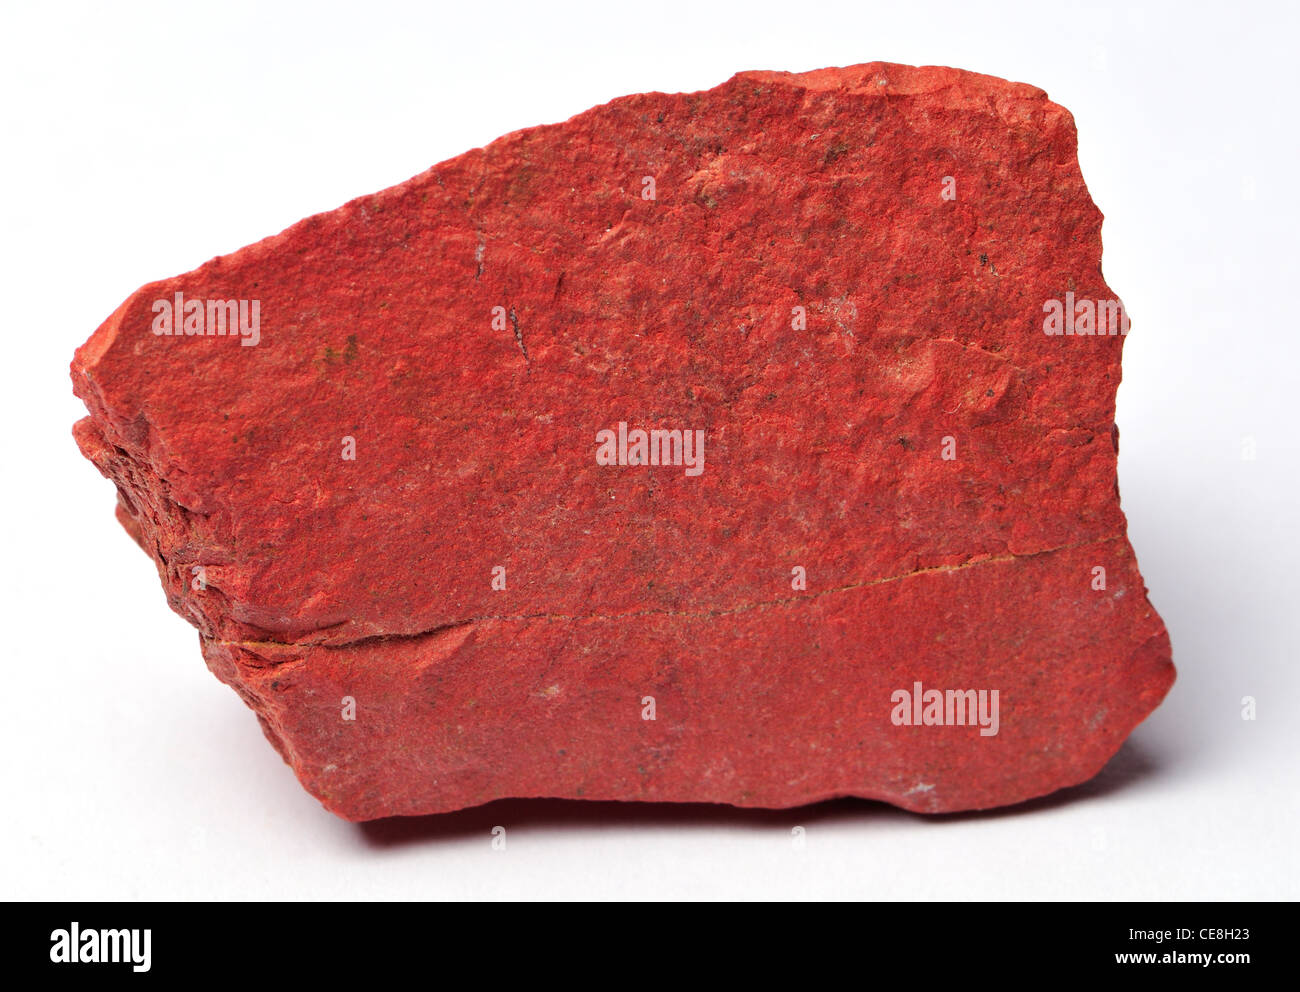 Red Jasper (from South Africa) opaque cryptocrystalline quartz - Stock Image